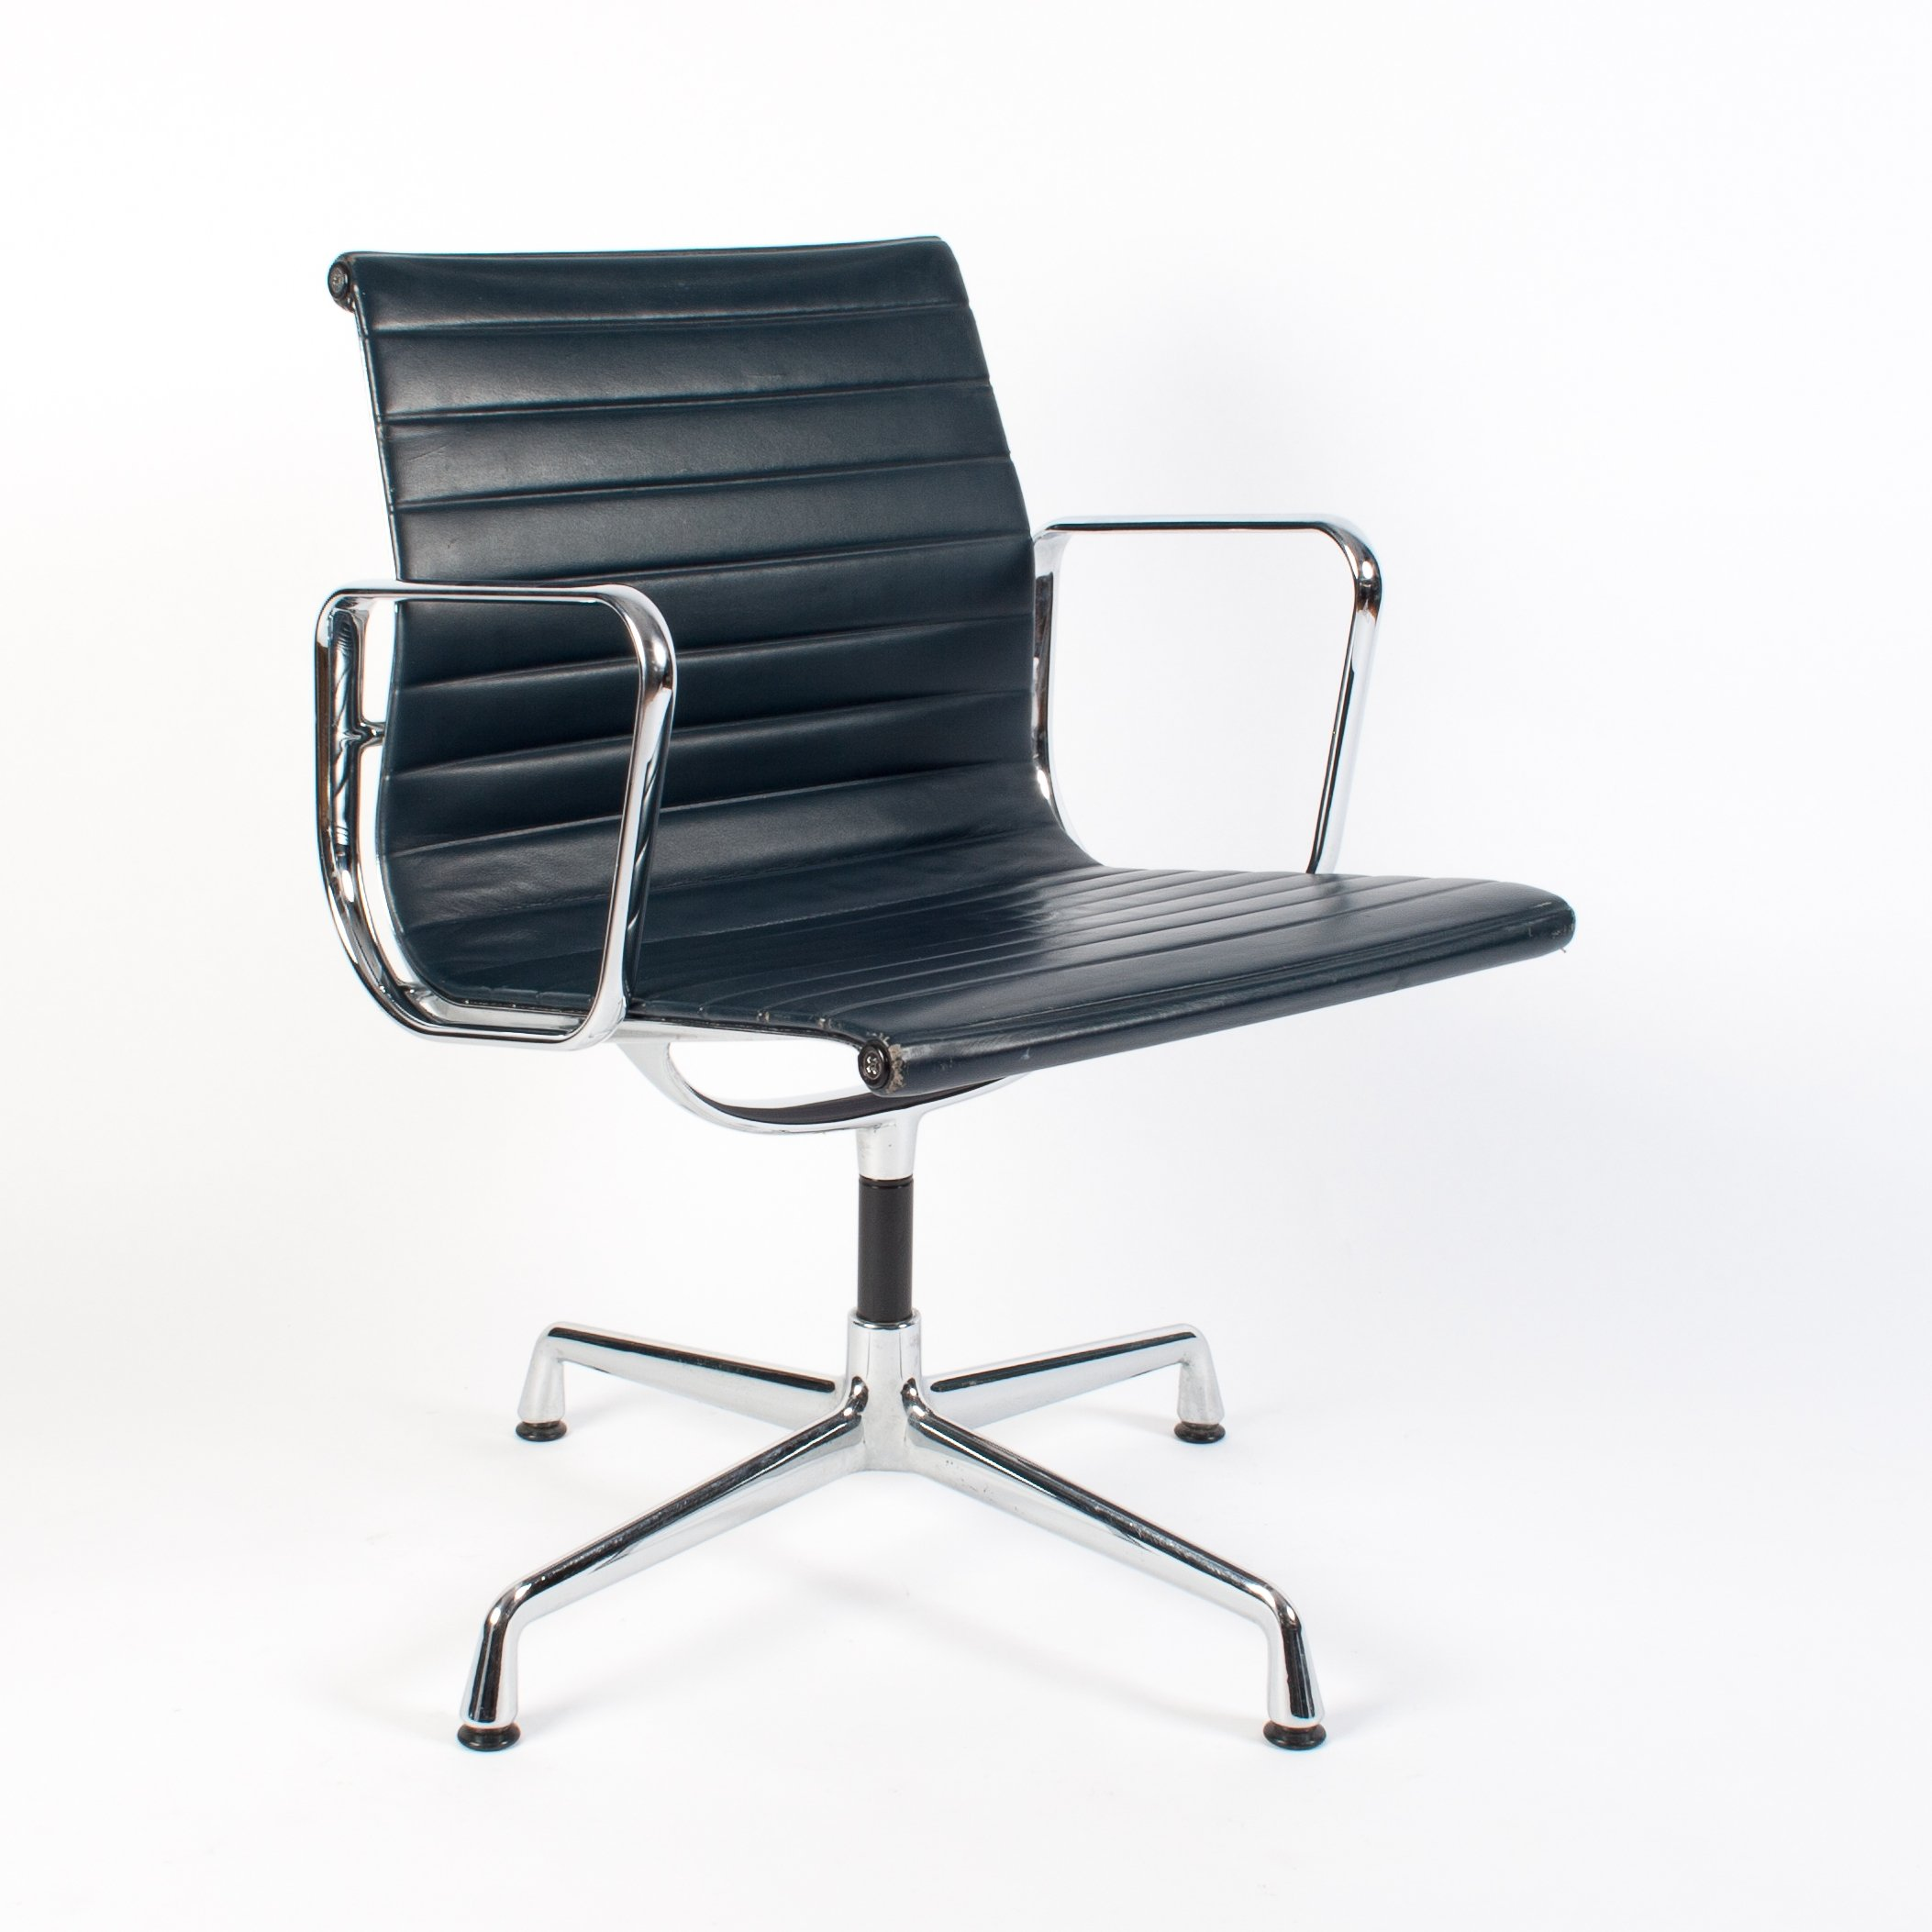 Eames 108 4x Blue Leather Ea 108 Arm Chair By Charles Ray Eames For